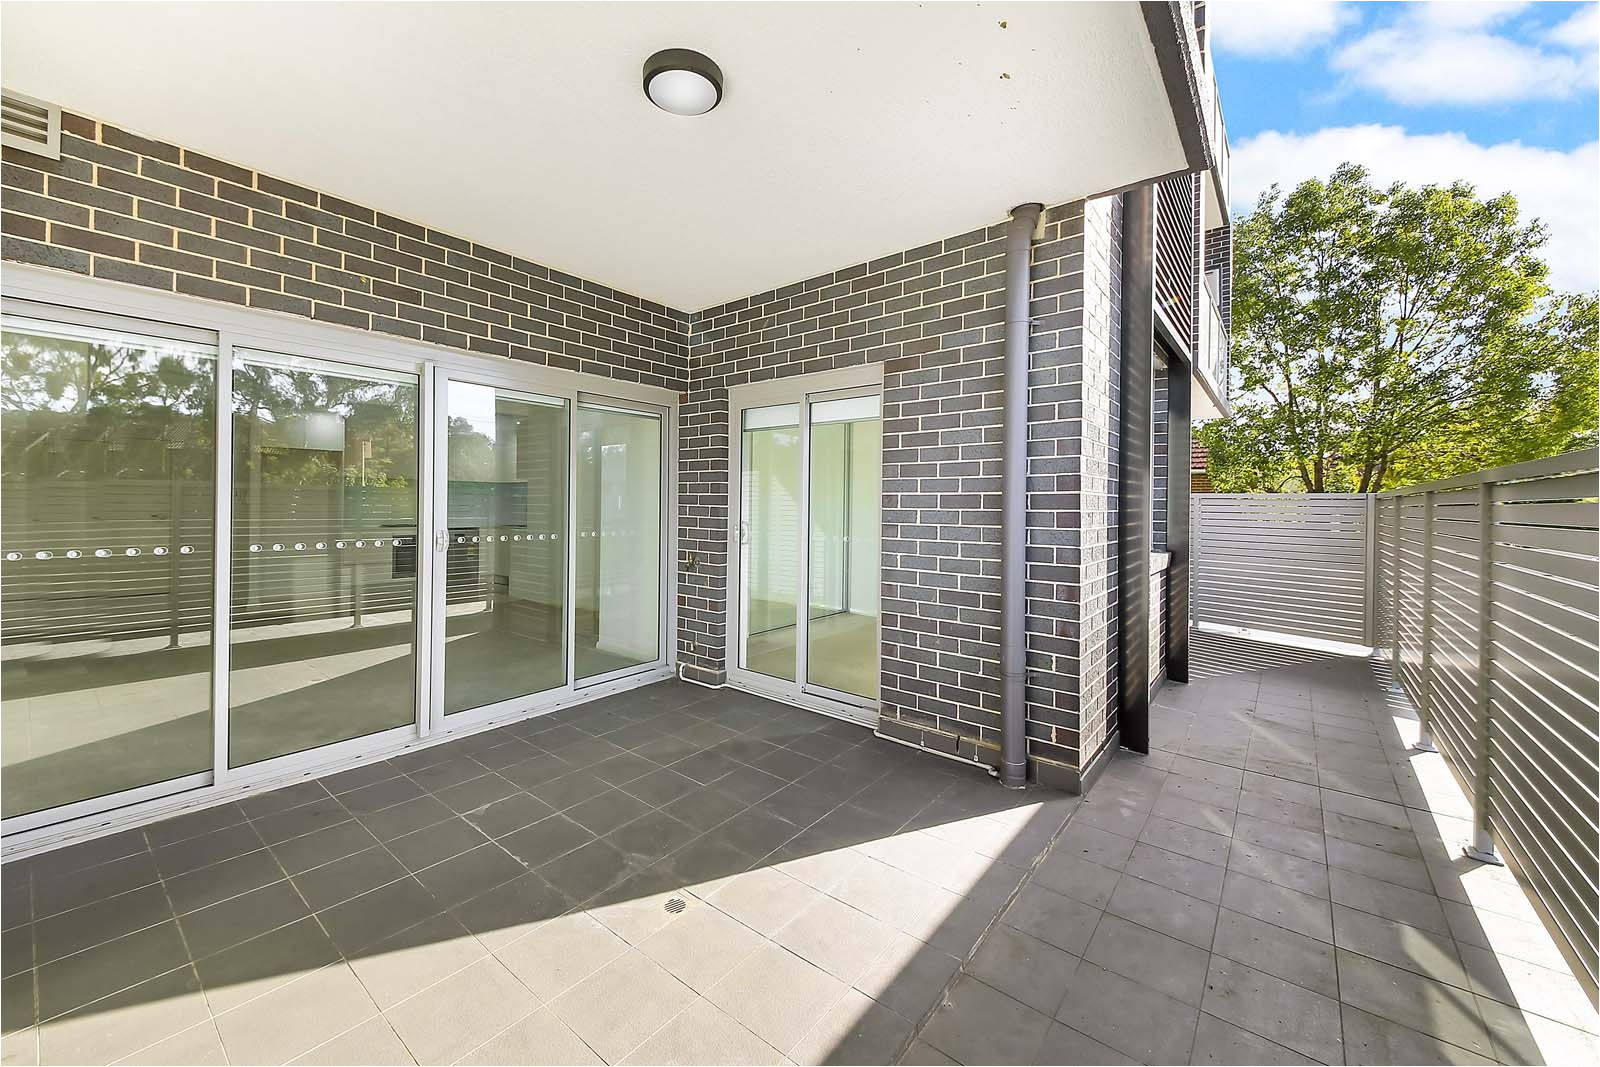 Old Bathtubs for Sale Perth sold Property $659 000 for 2 564 570 Liverpool Road